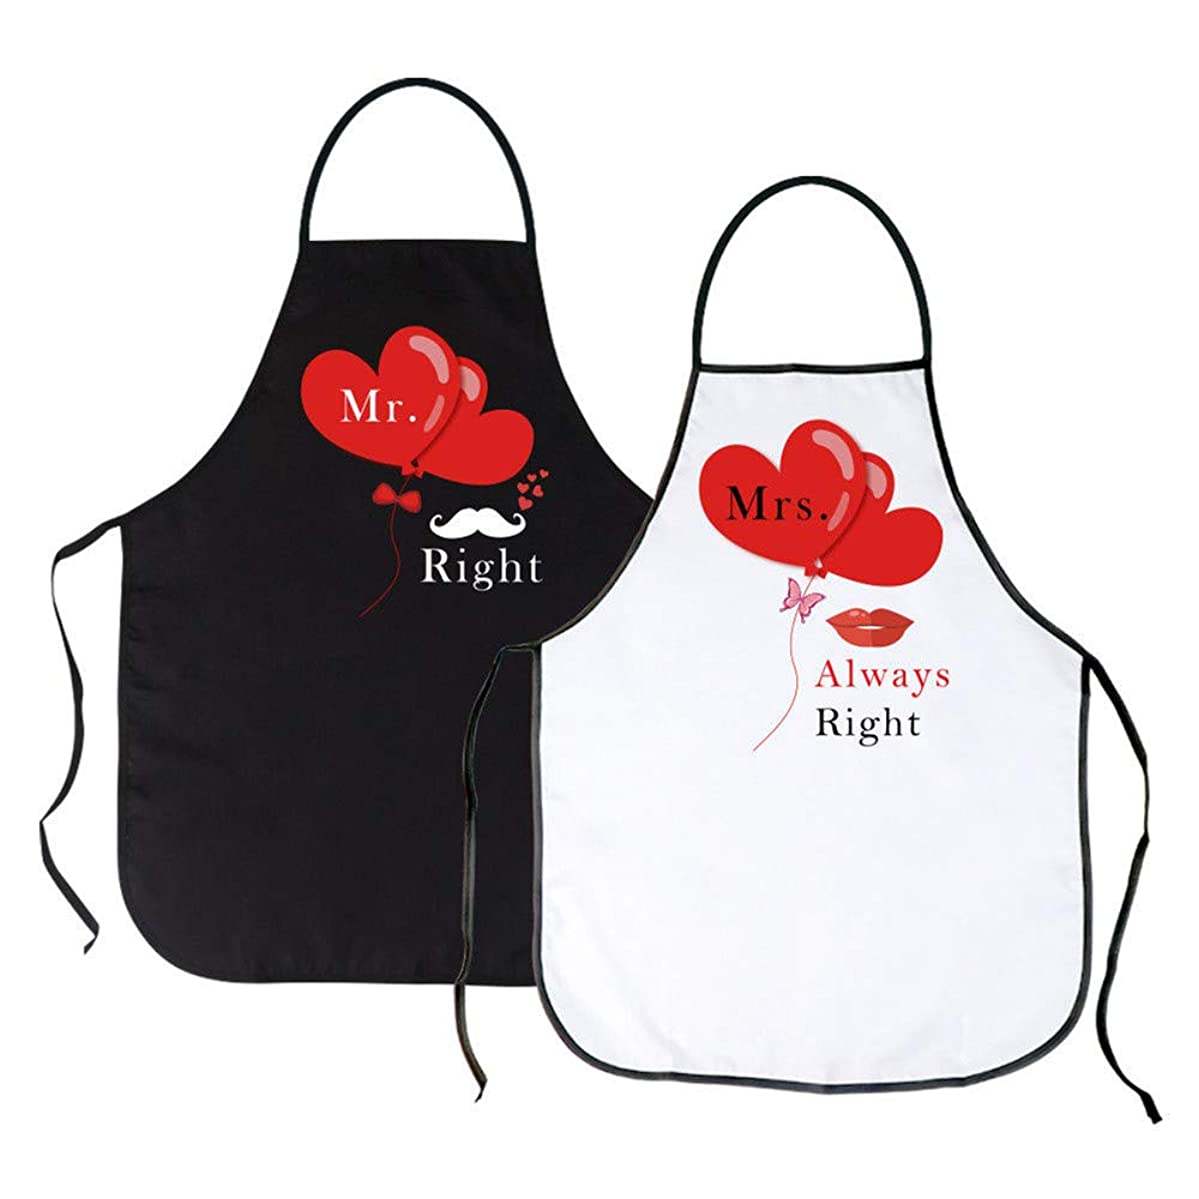 RAYNAG Set of 2 Mr. Right & Mrs. Always Right Kitchen Aprons for Wedding Engagement Gift, Couples Aprons for Cooking